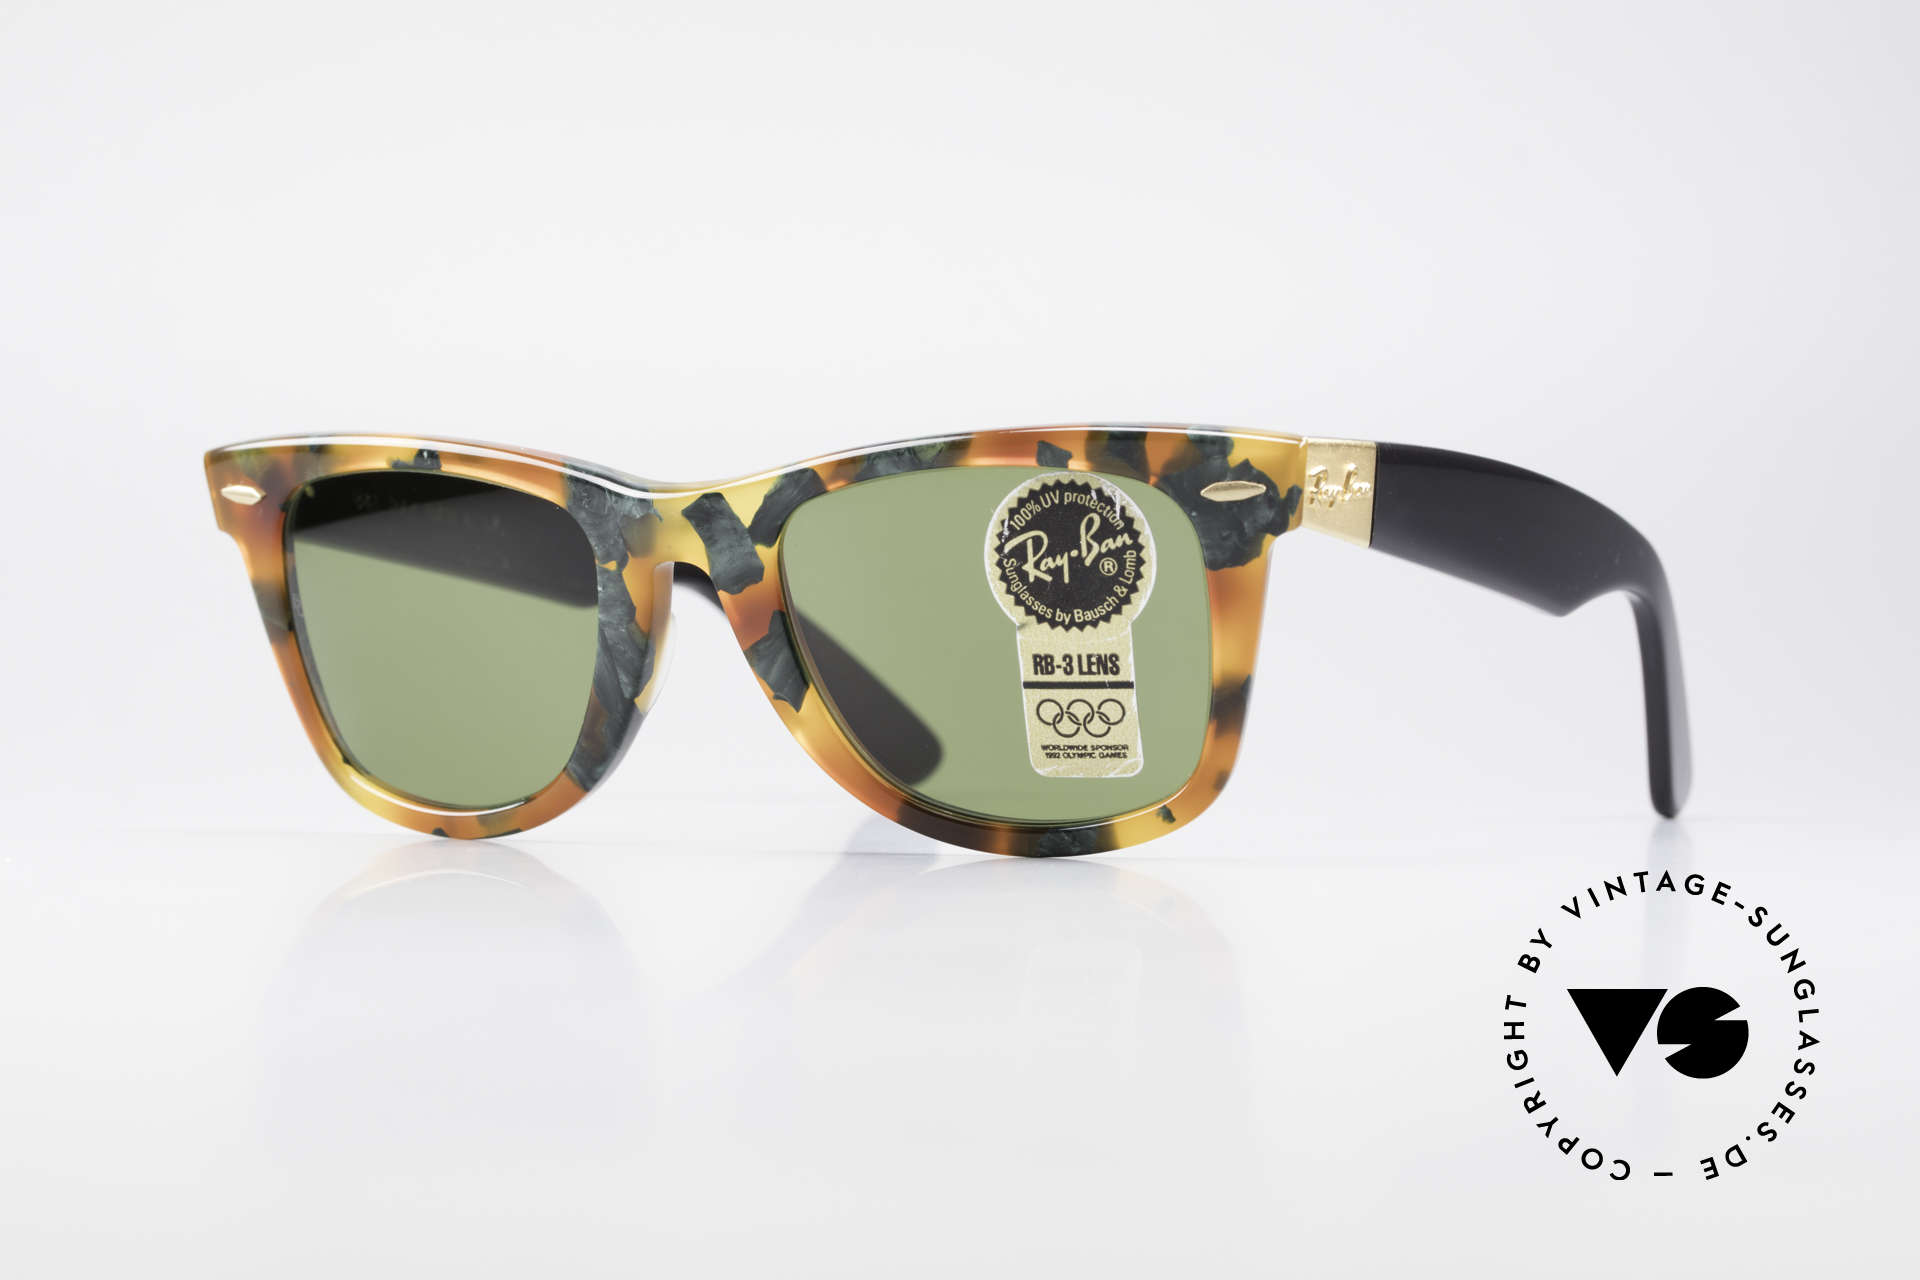 Ray Ban Wayfarer I Limited Deluxe Edition USA, Wayfarer: the downright classic of sunglass fashion, Made for Men and Women